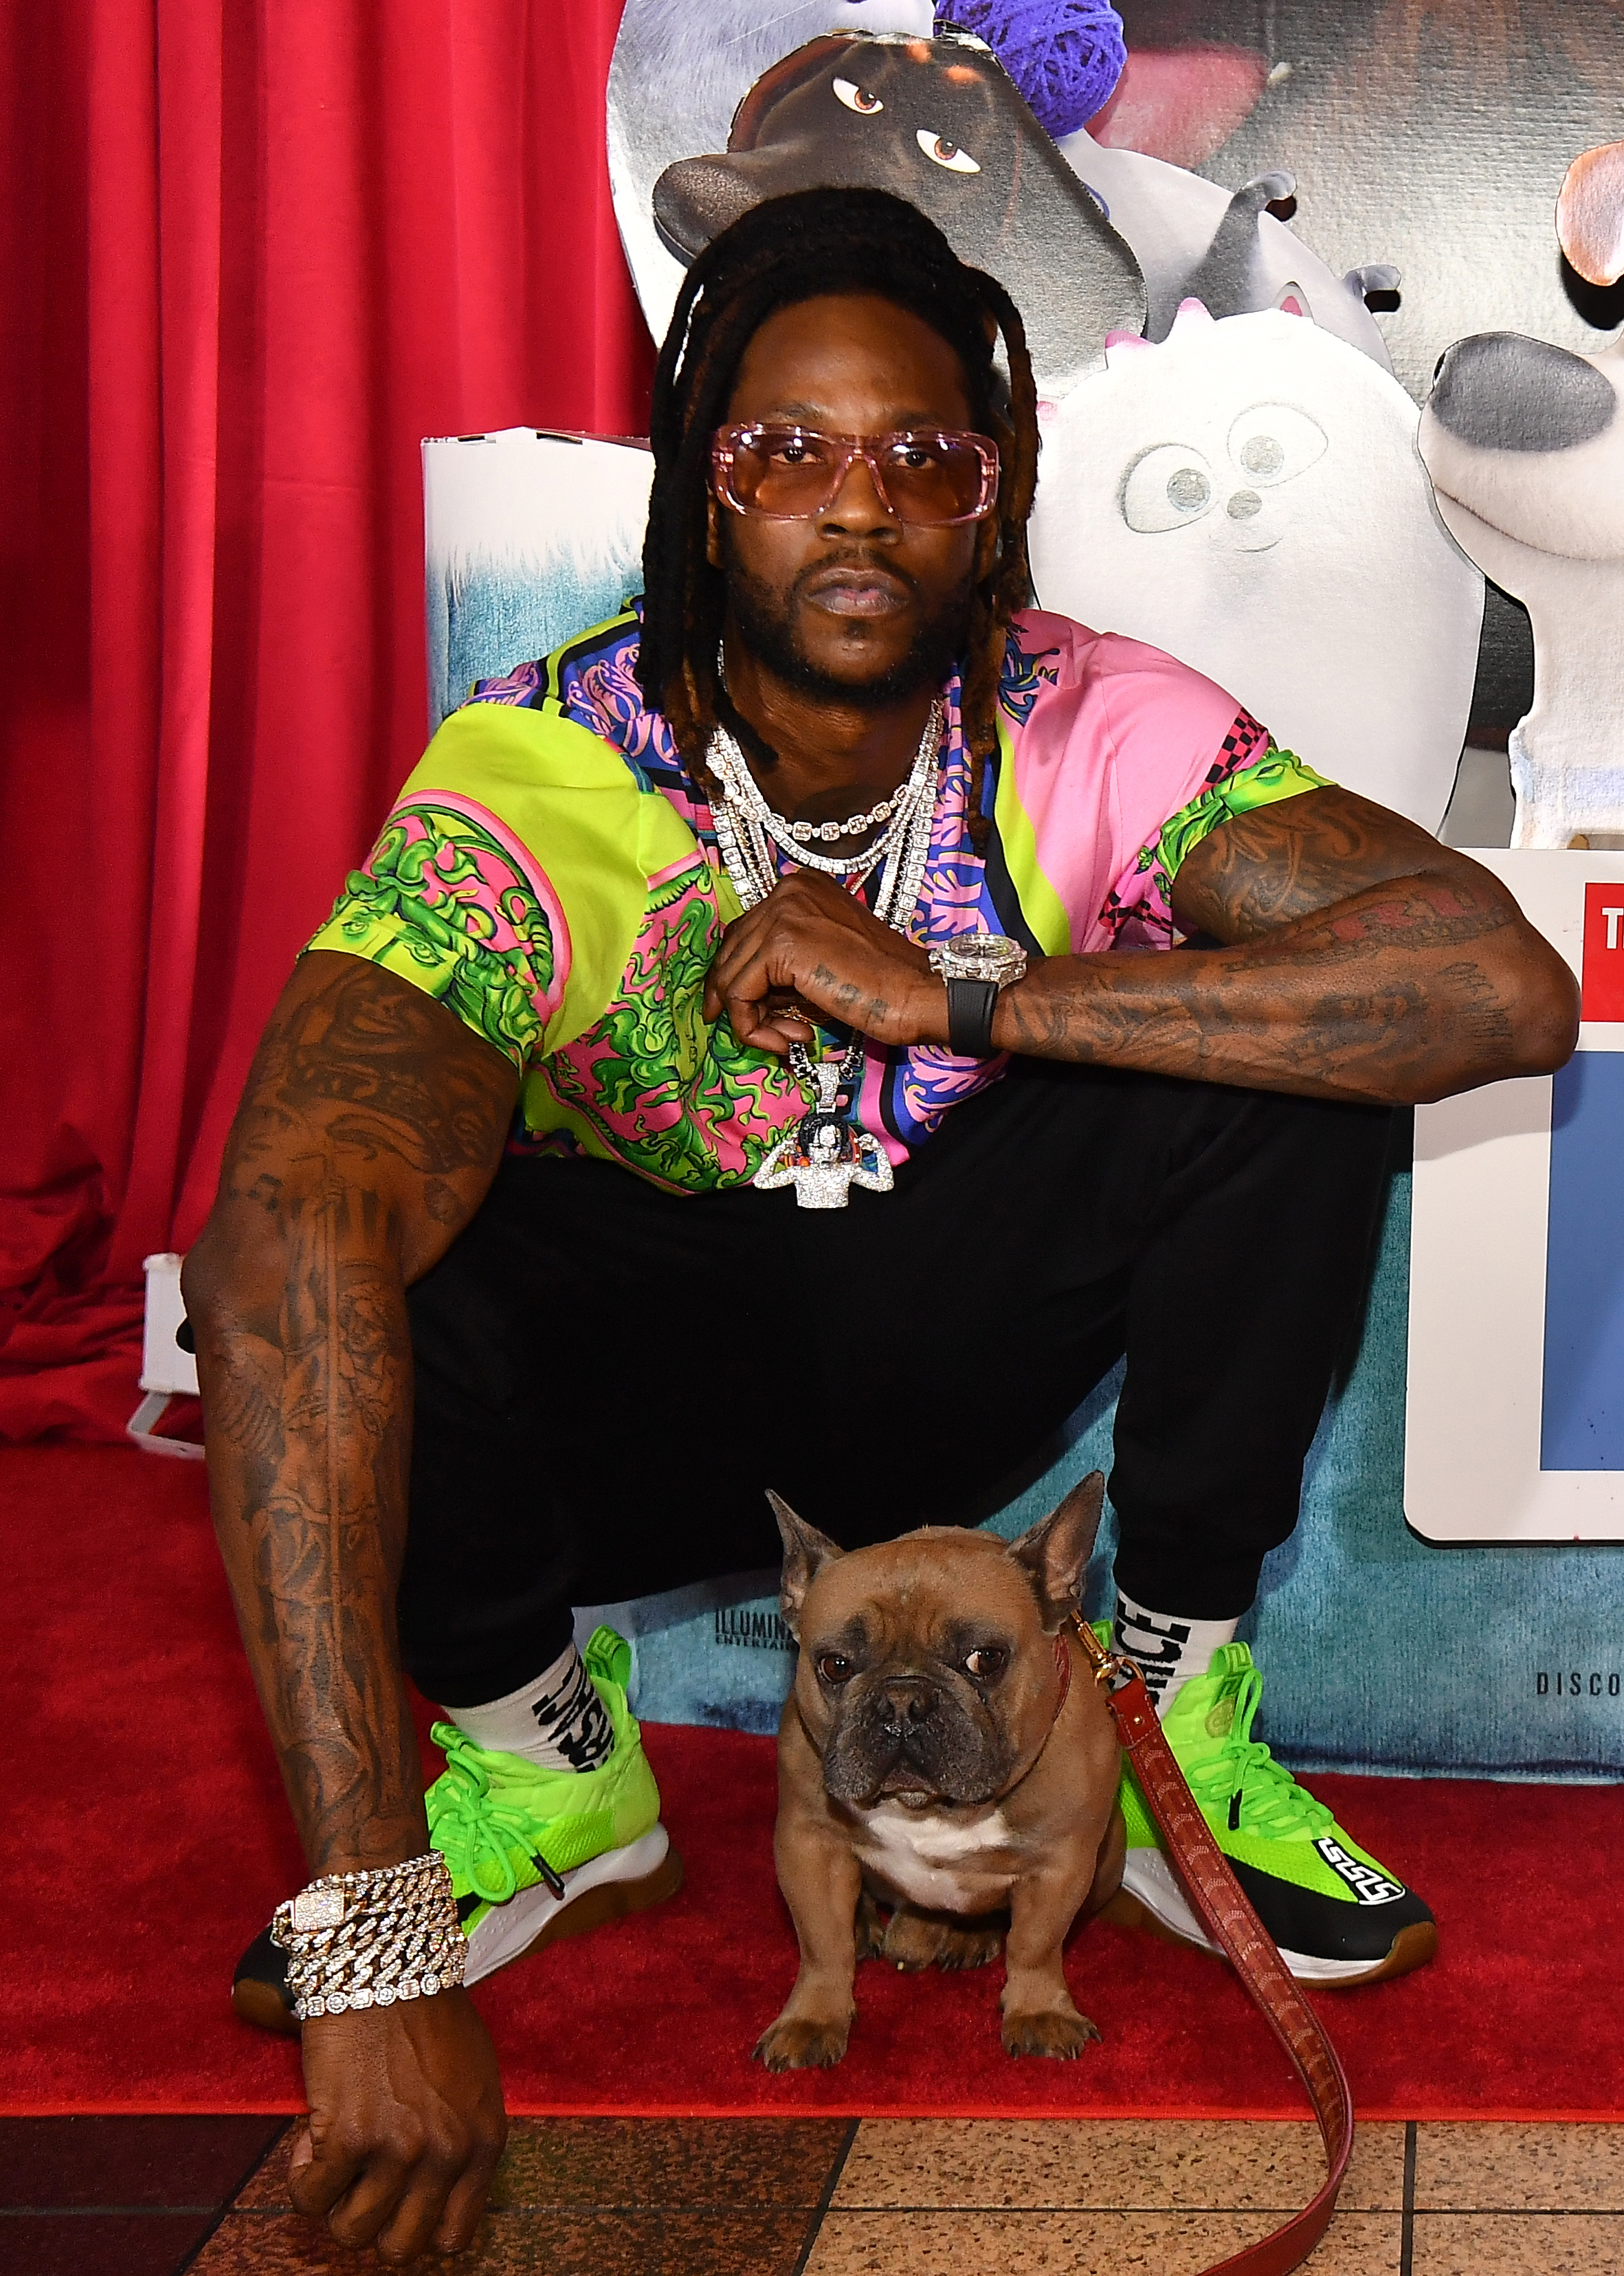 2 Chainz Host The Secret Life Of Pets 2 Screening In ATL With Dog Trappy